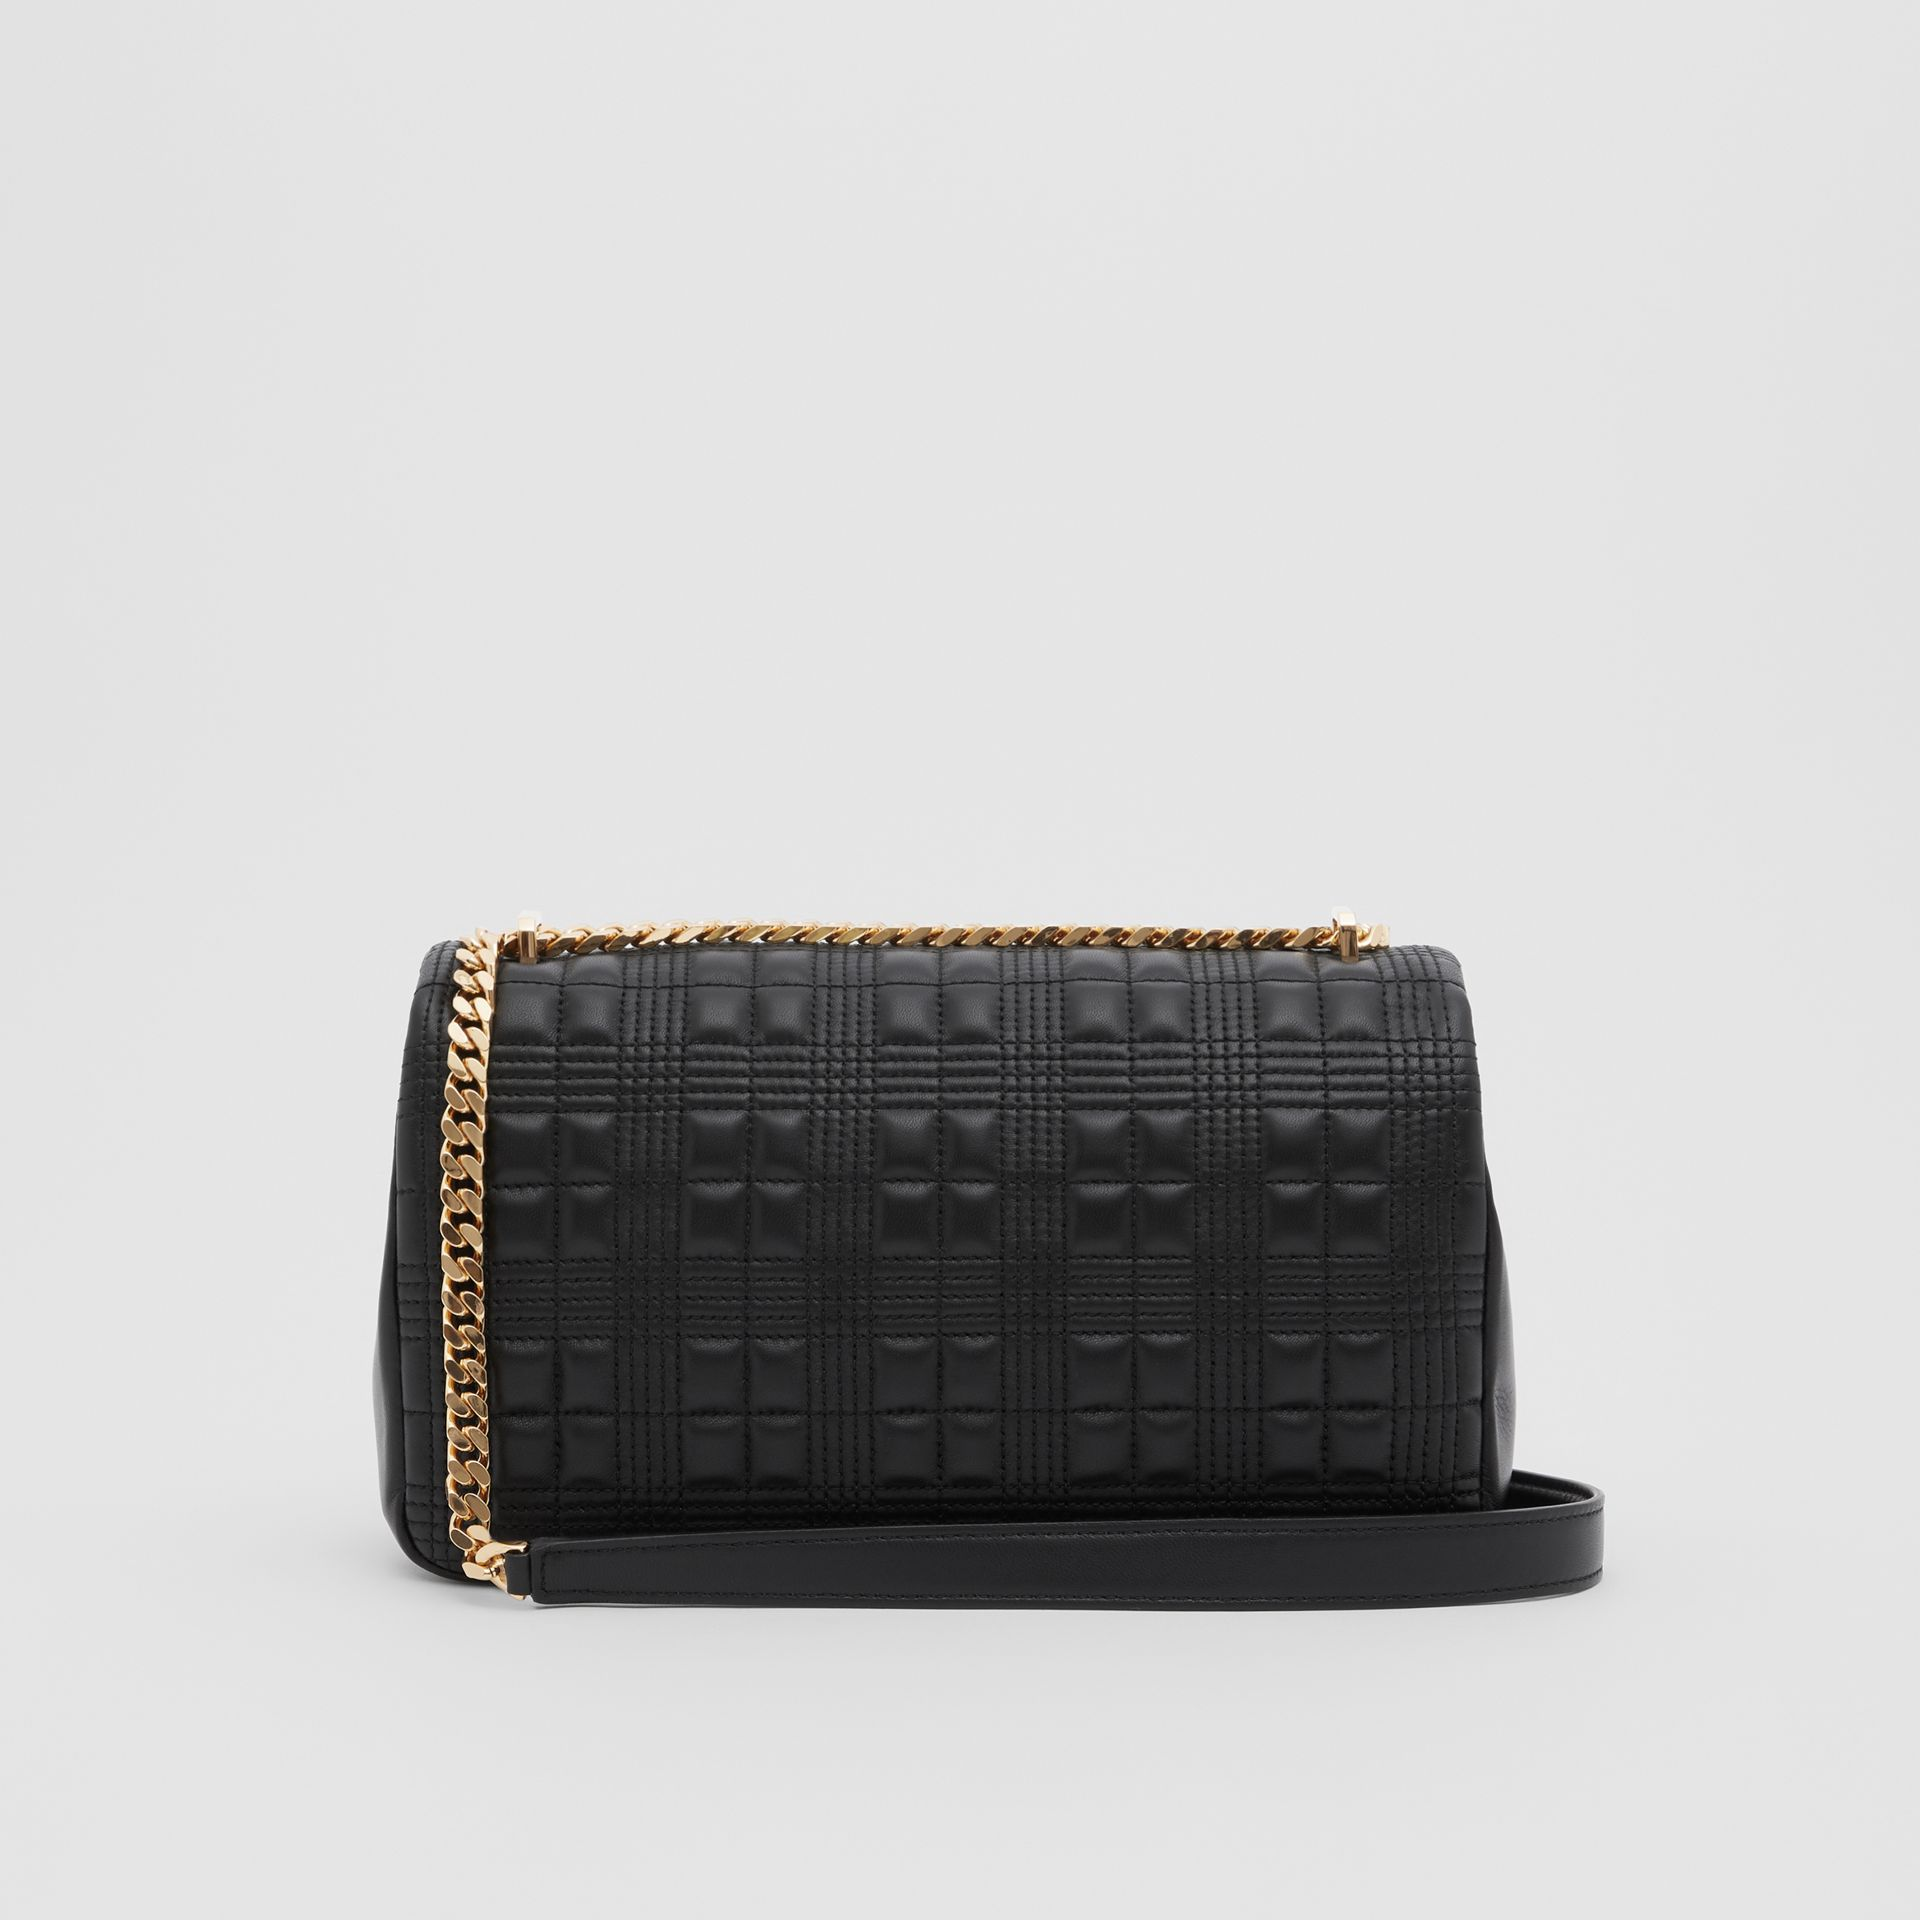 Medium Quilted Lambskin Lola Bag in Black - Women | Burberry Australia - gallery image 5